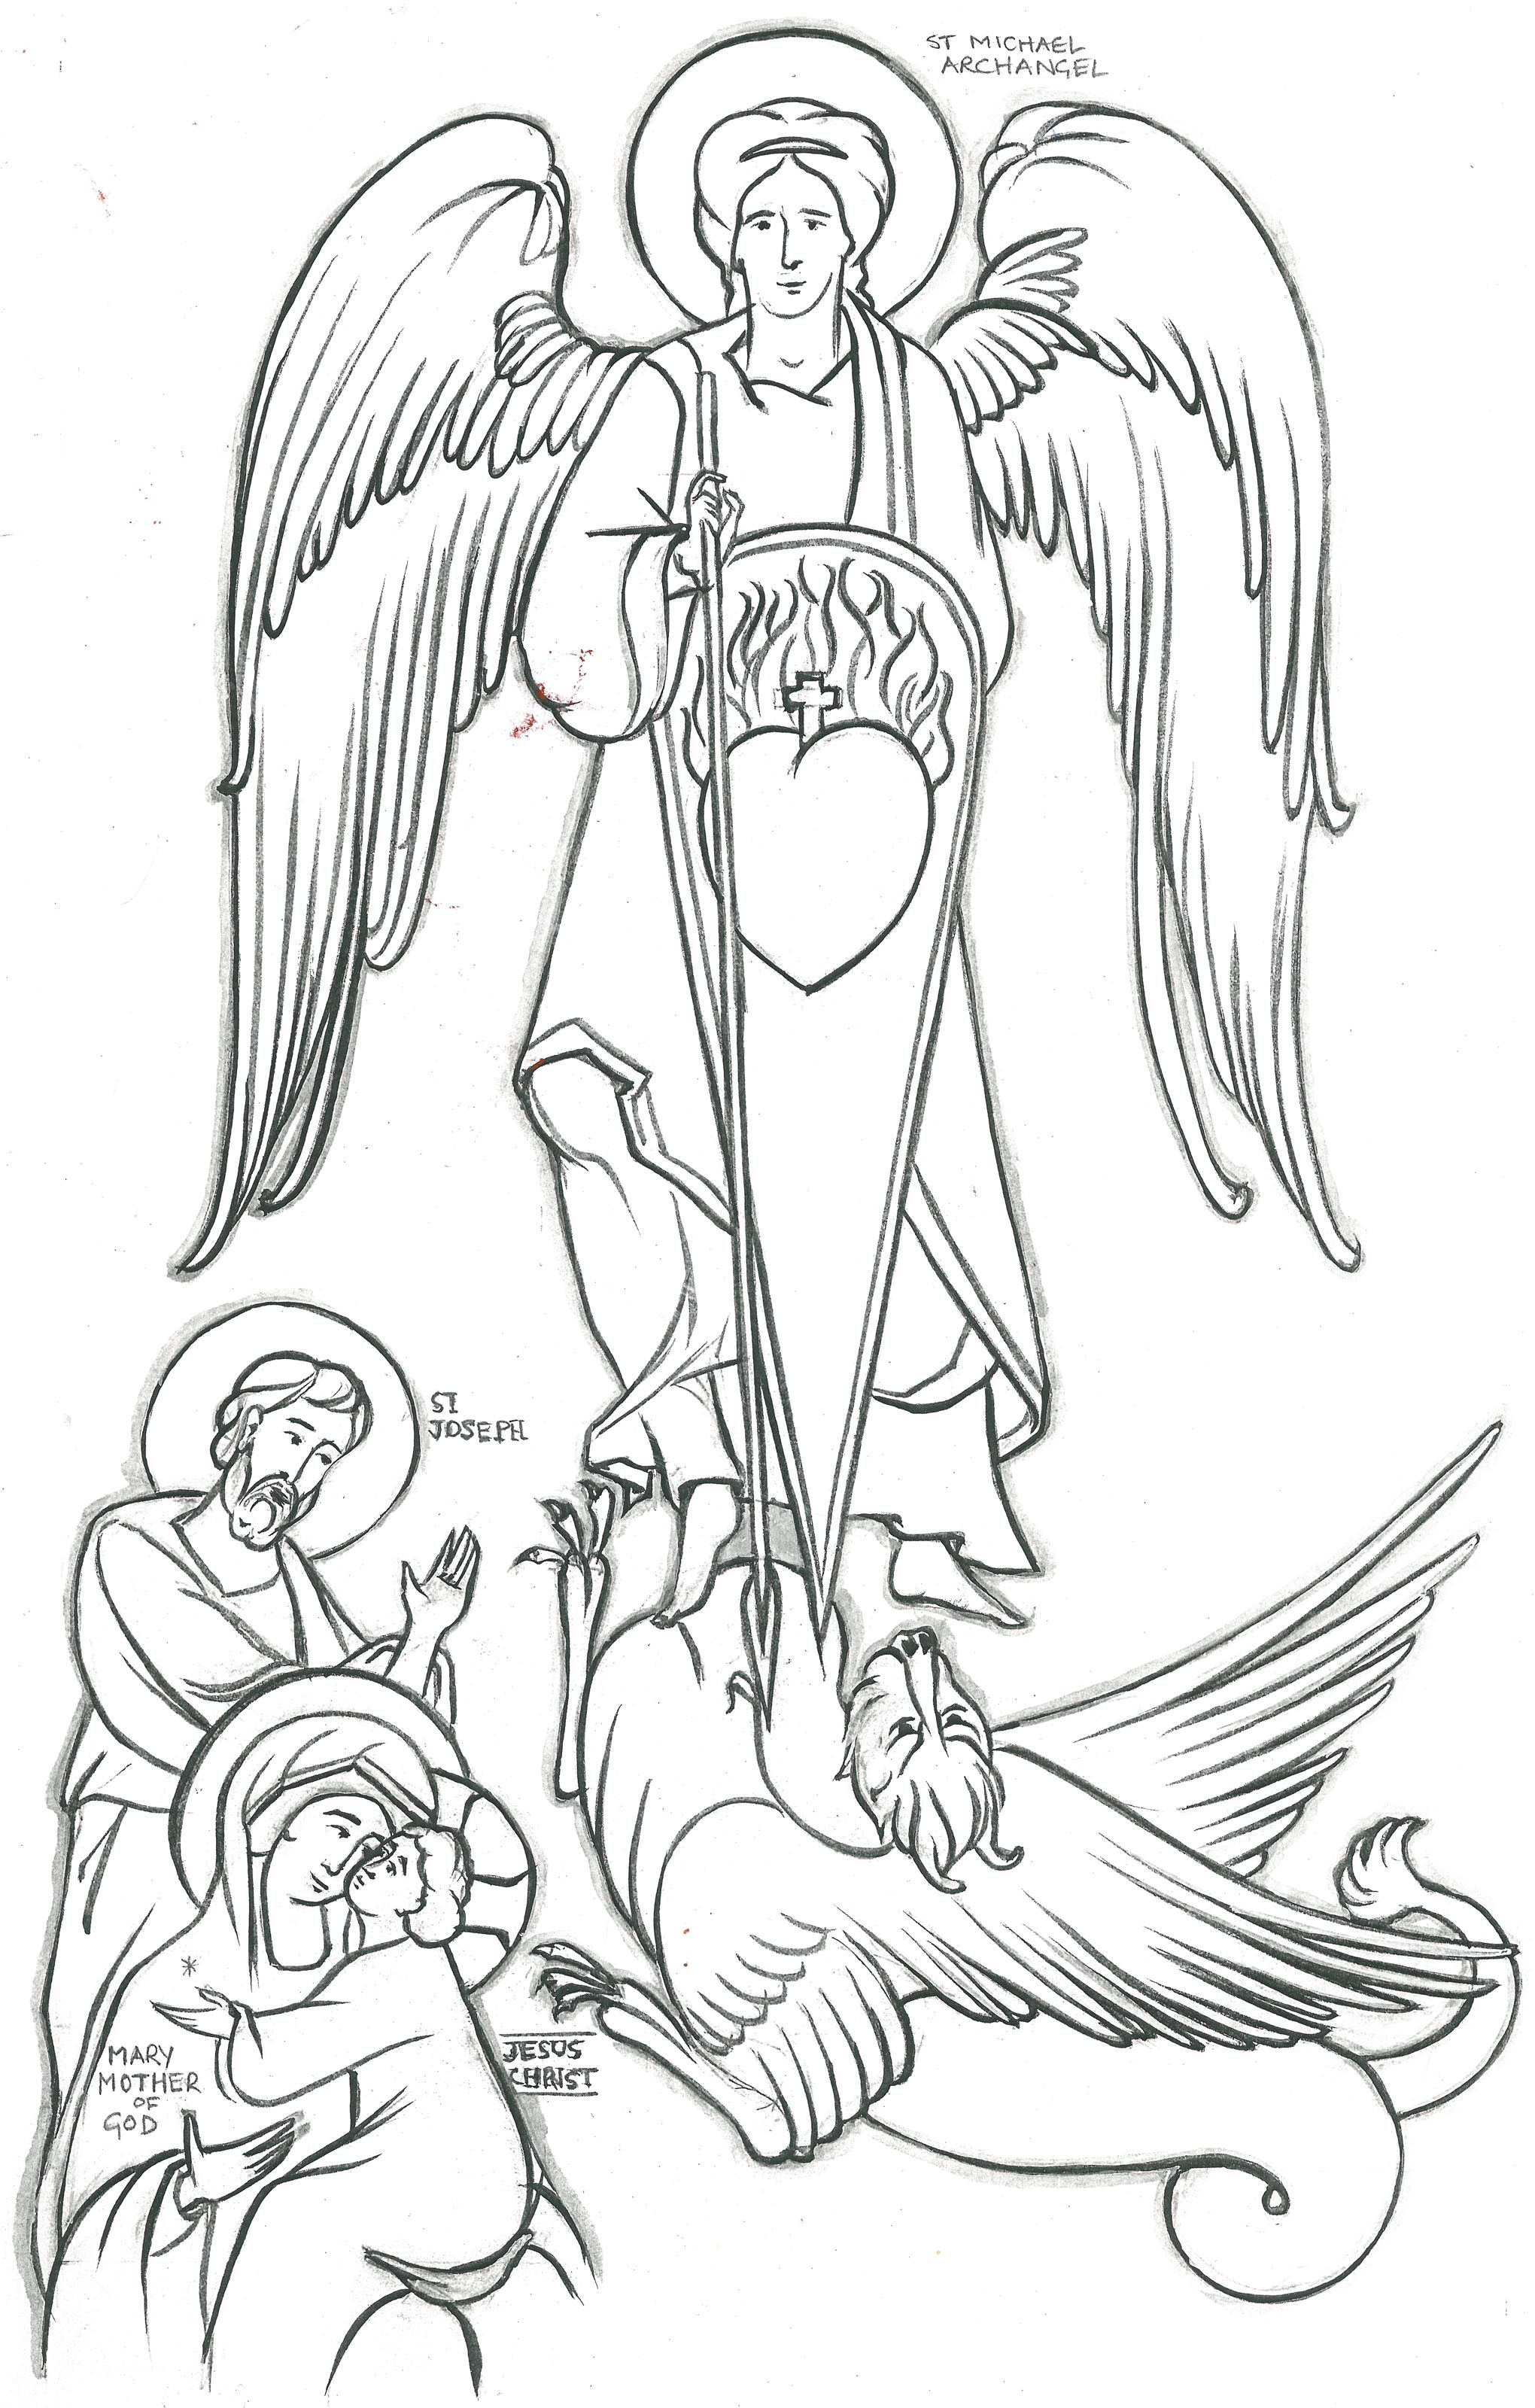 st michael and holy familyjpg 20403200